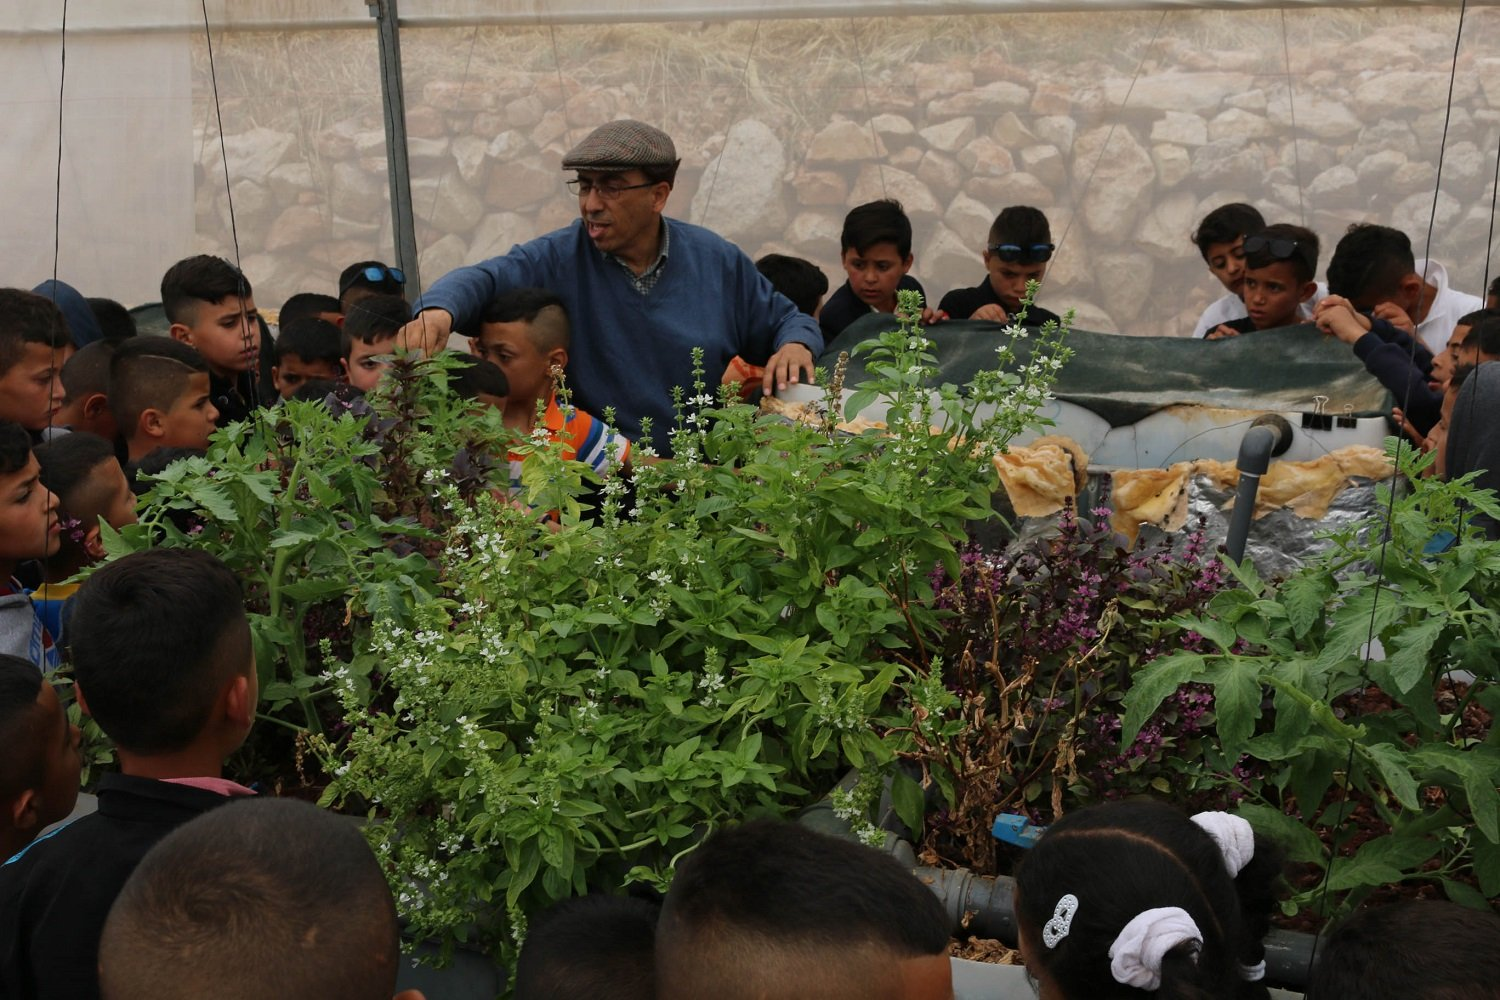 """Dr Qumsiyeh shows a tour group of local children vegetables and herbs growing in an aquaponics system in the museum's greenhouse"